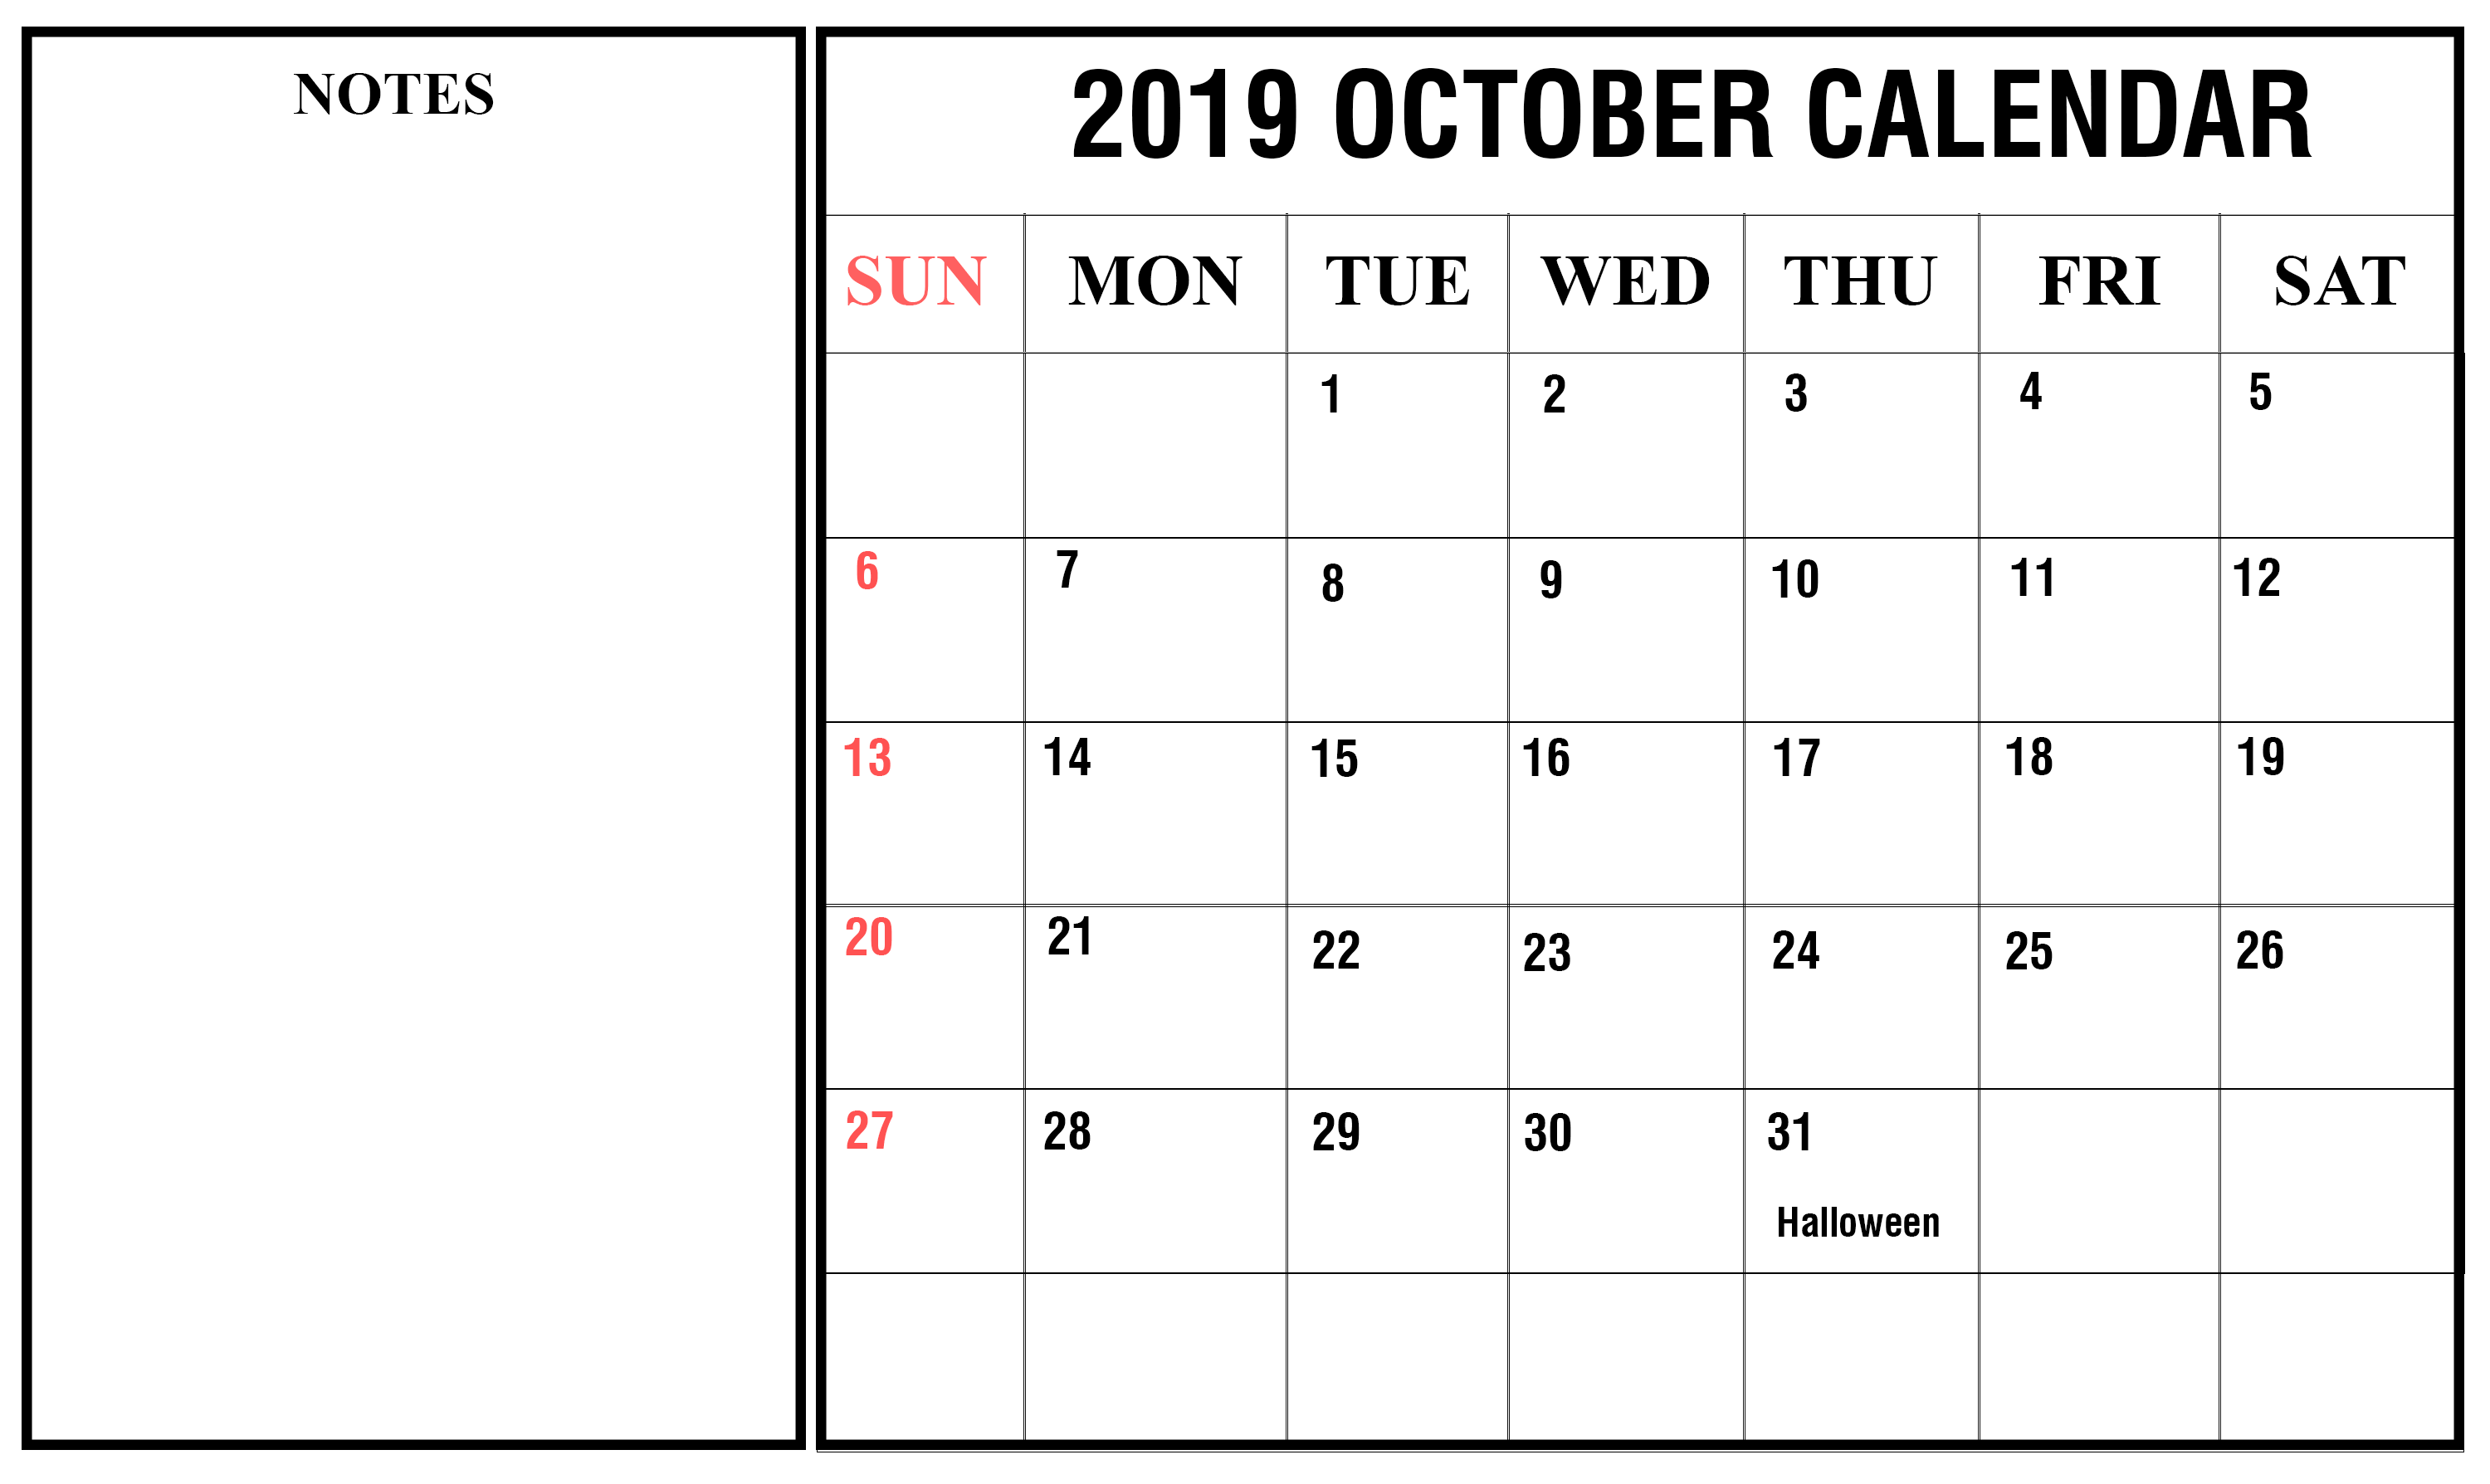 2019 October Holidays Calendar